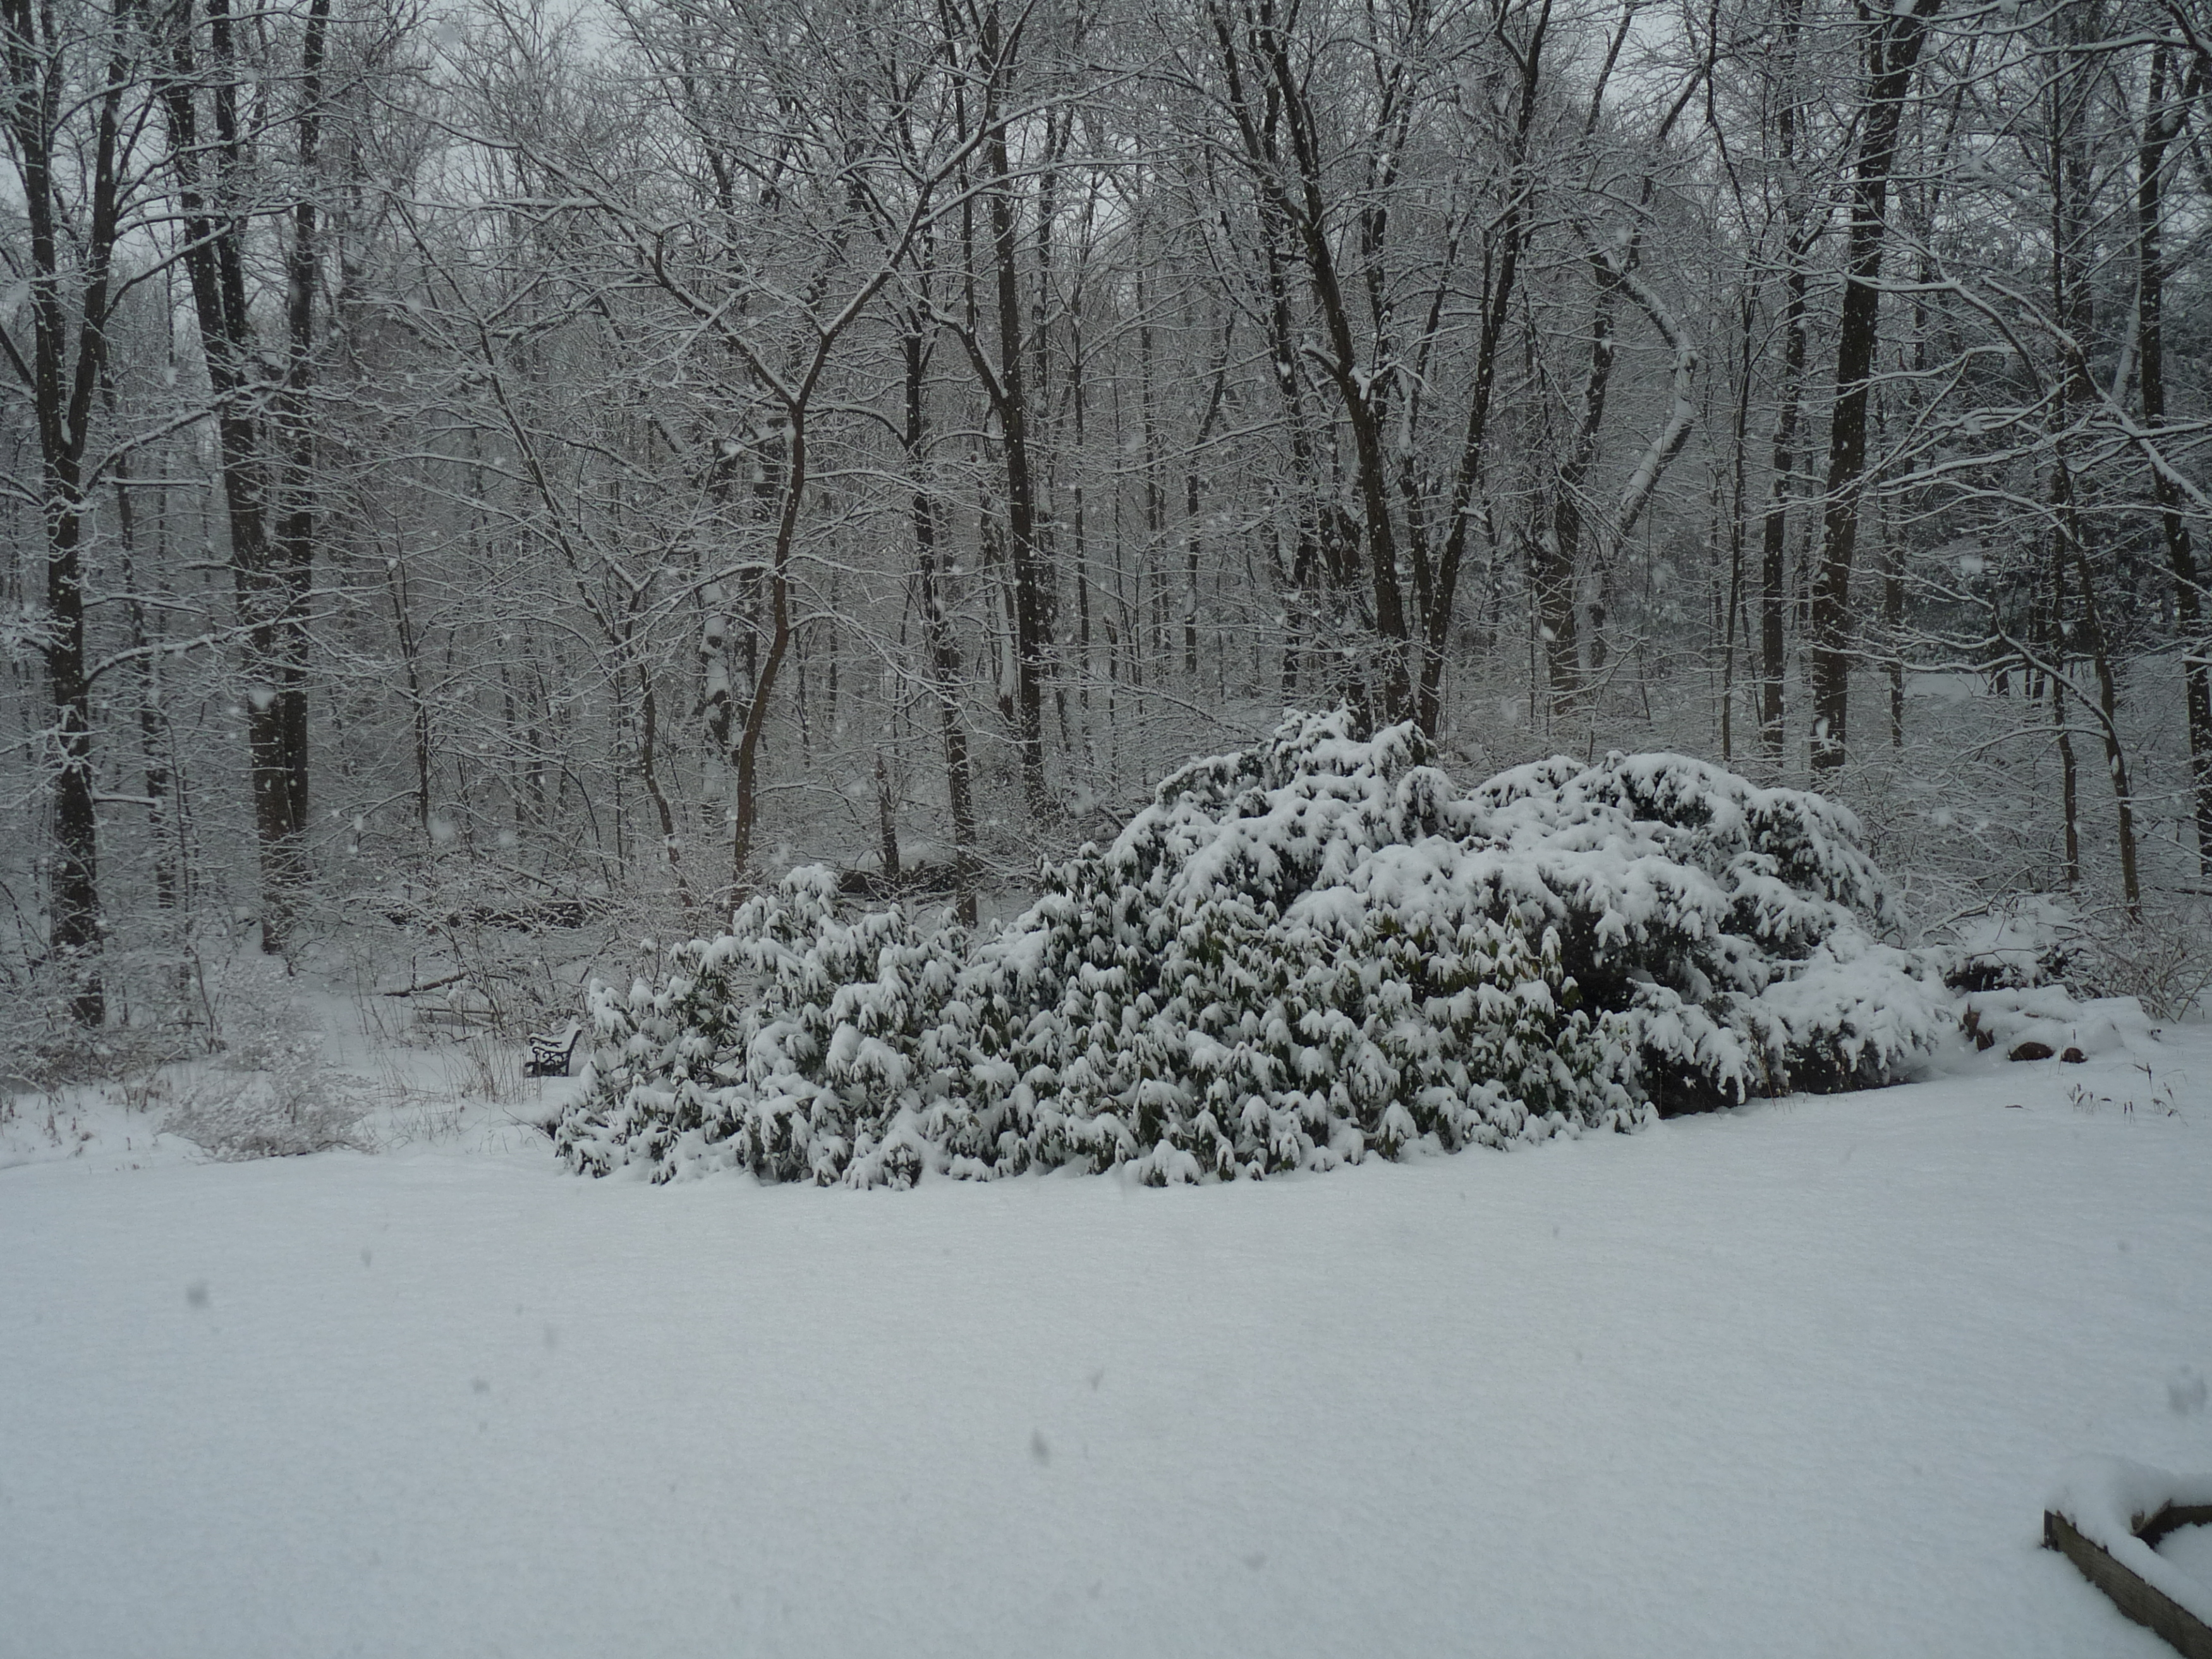 Rhododendron in snowstorm